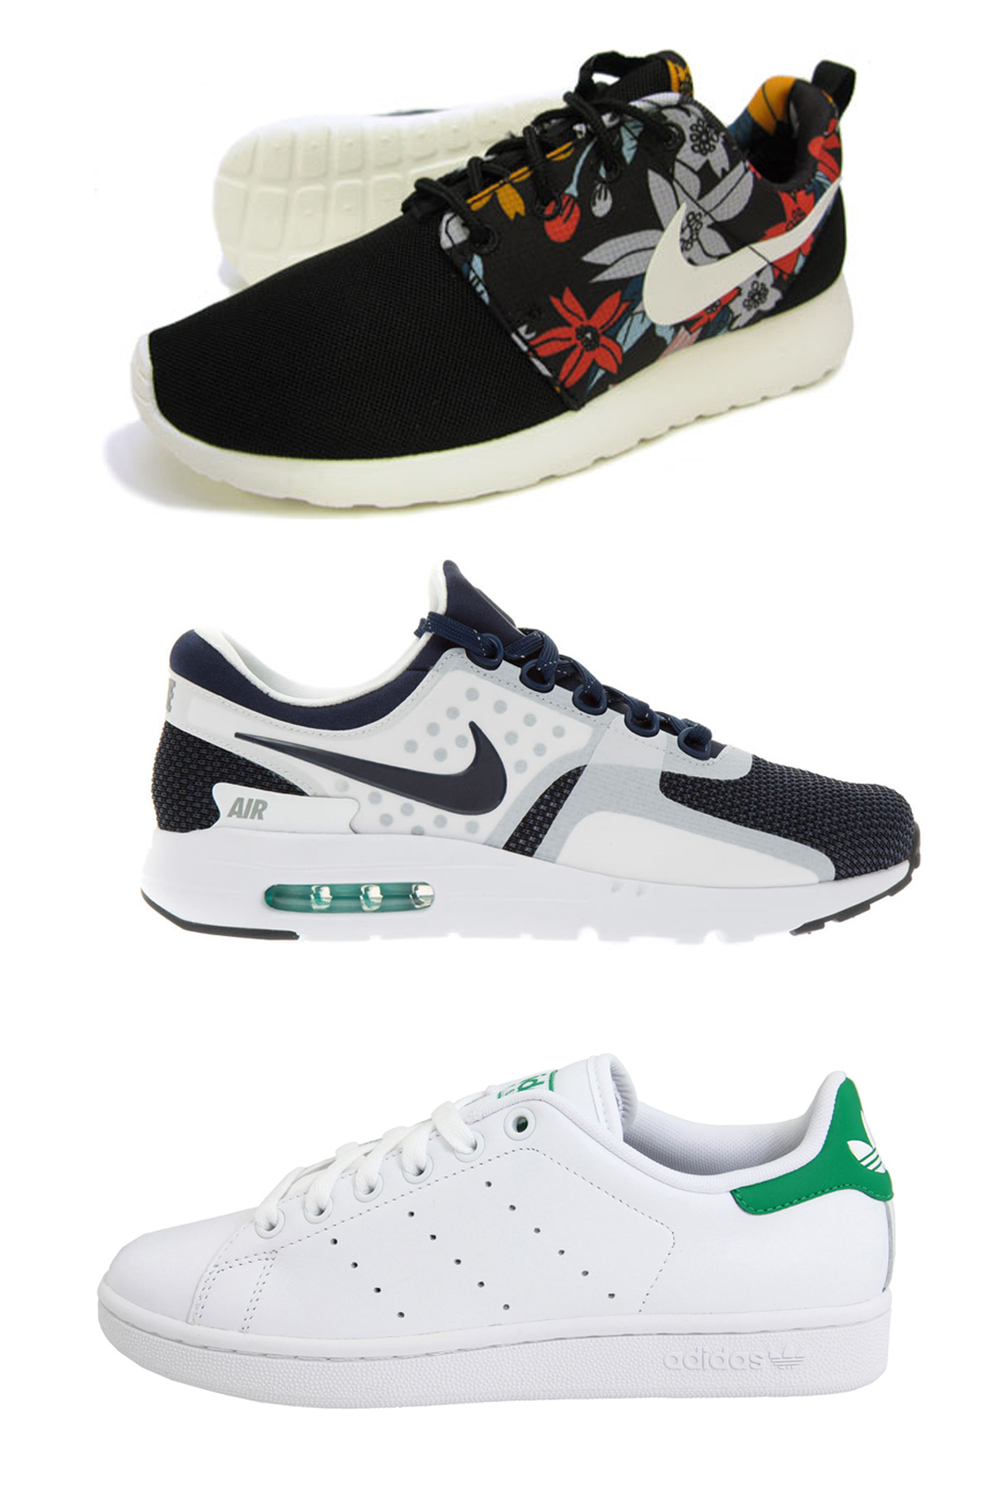 Nike Roshe Tropical Pack, Air Max Zero, Stan Smith Adidas